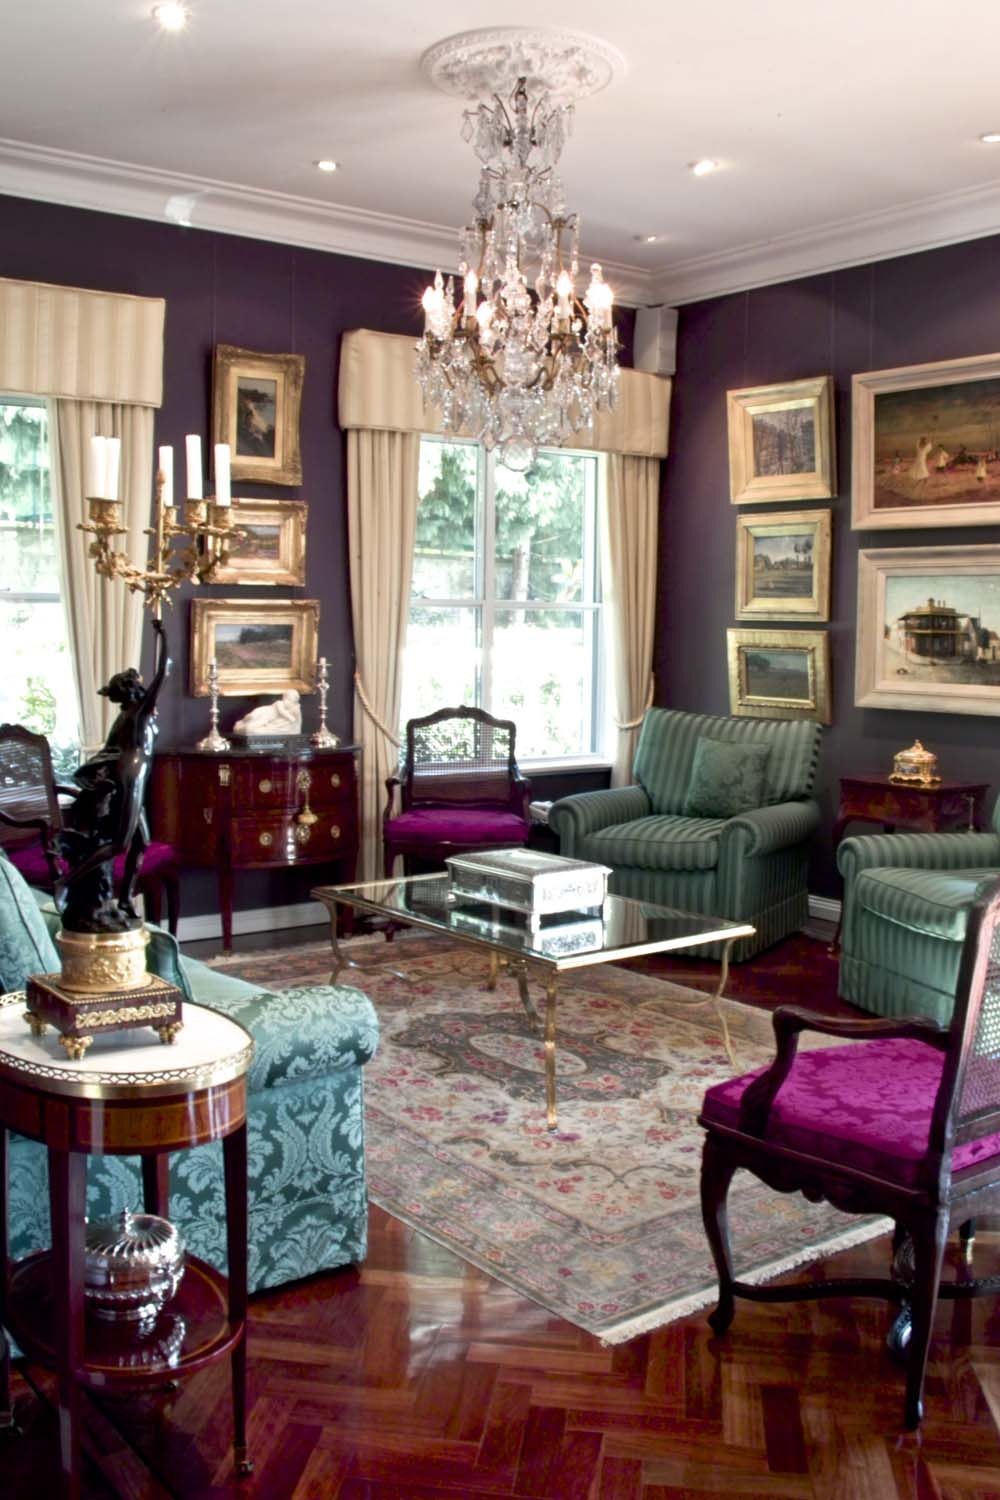 16 Classic fromal French mansion interior design